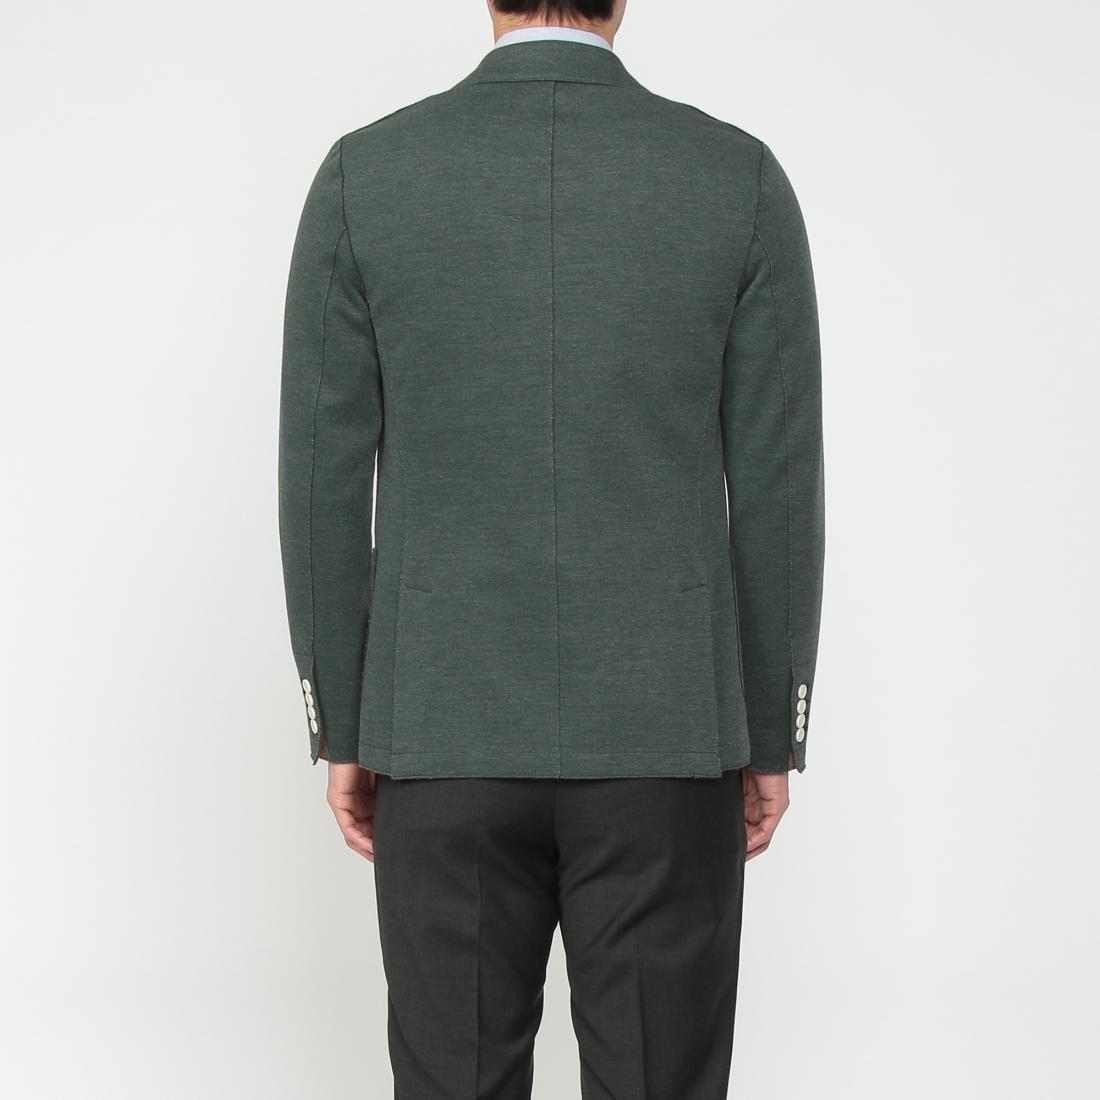 Blended Cotton Jersey 2-button Jacket 1212947: Green